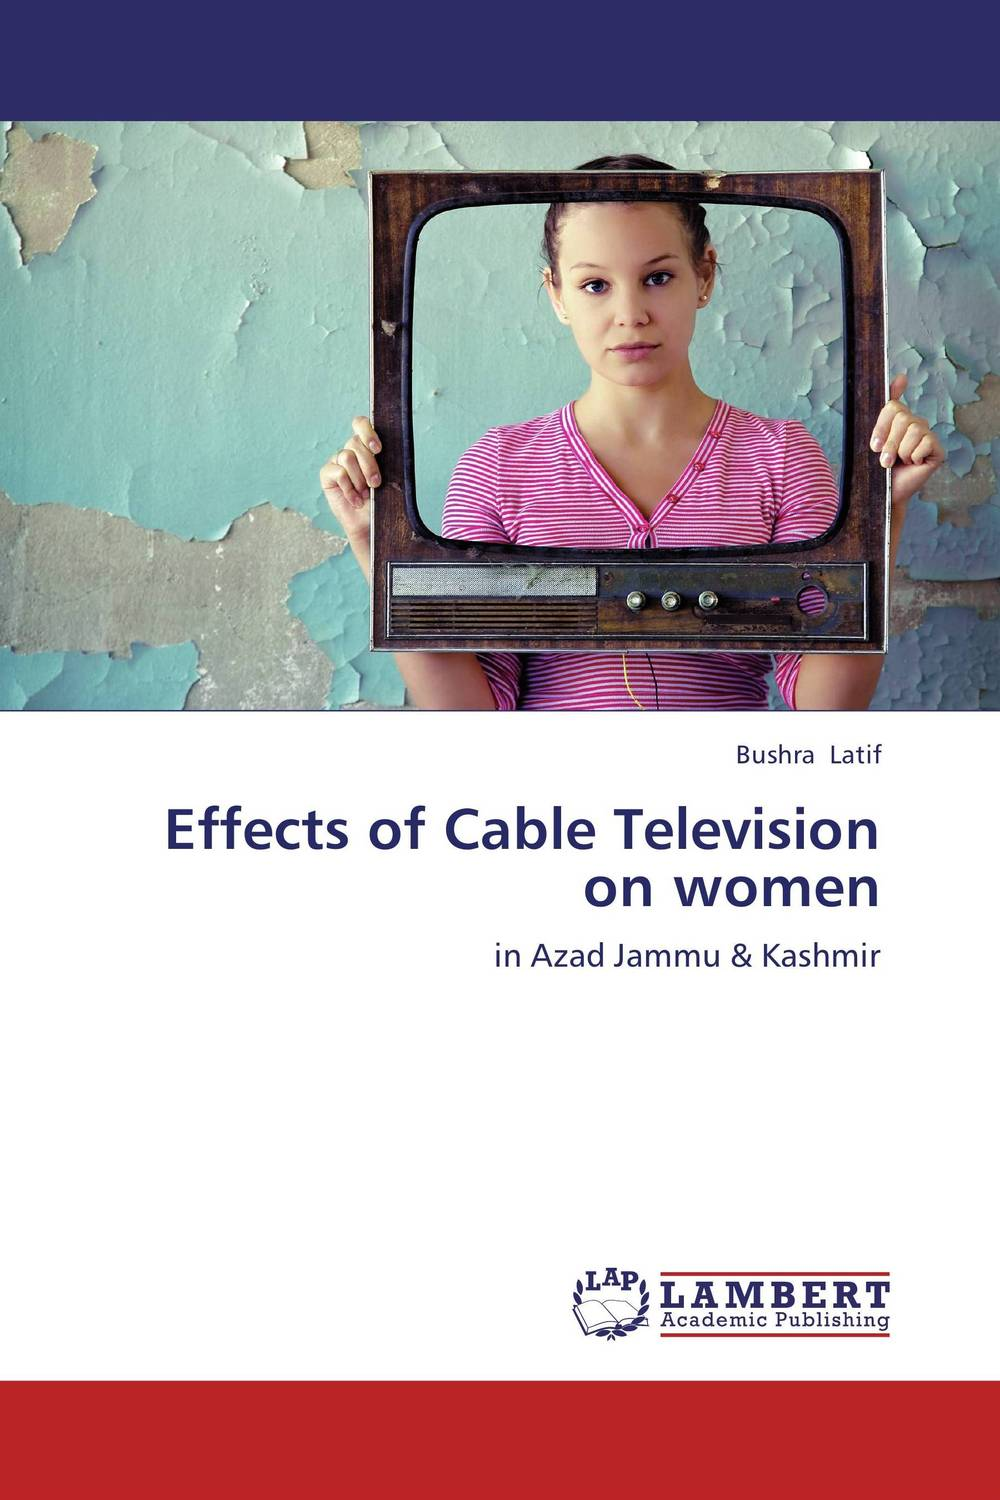 Effects of Cable Television on women